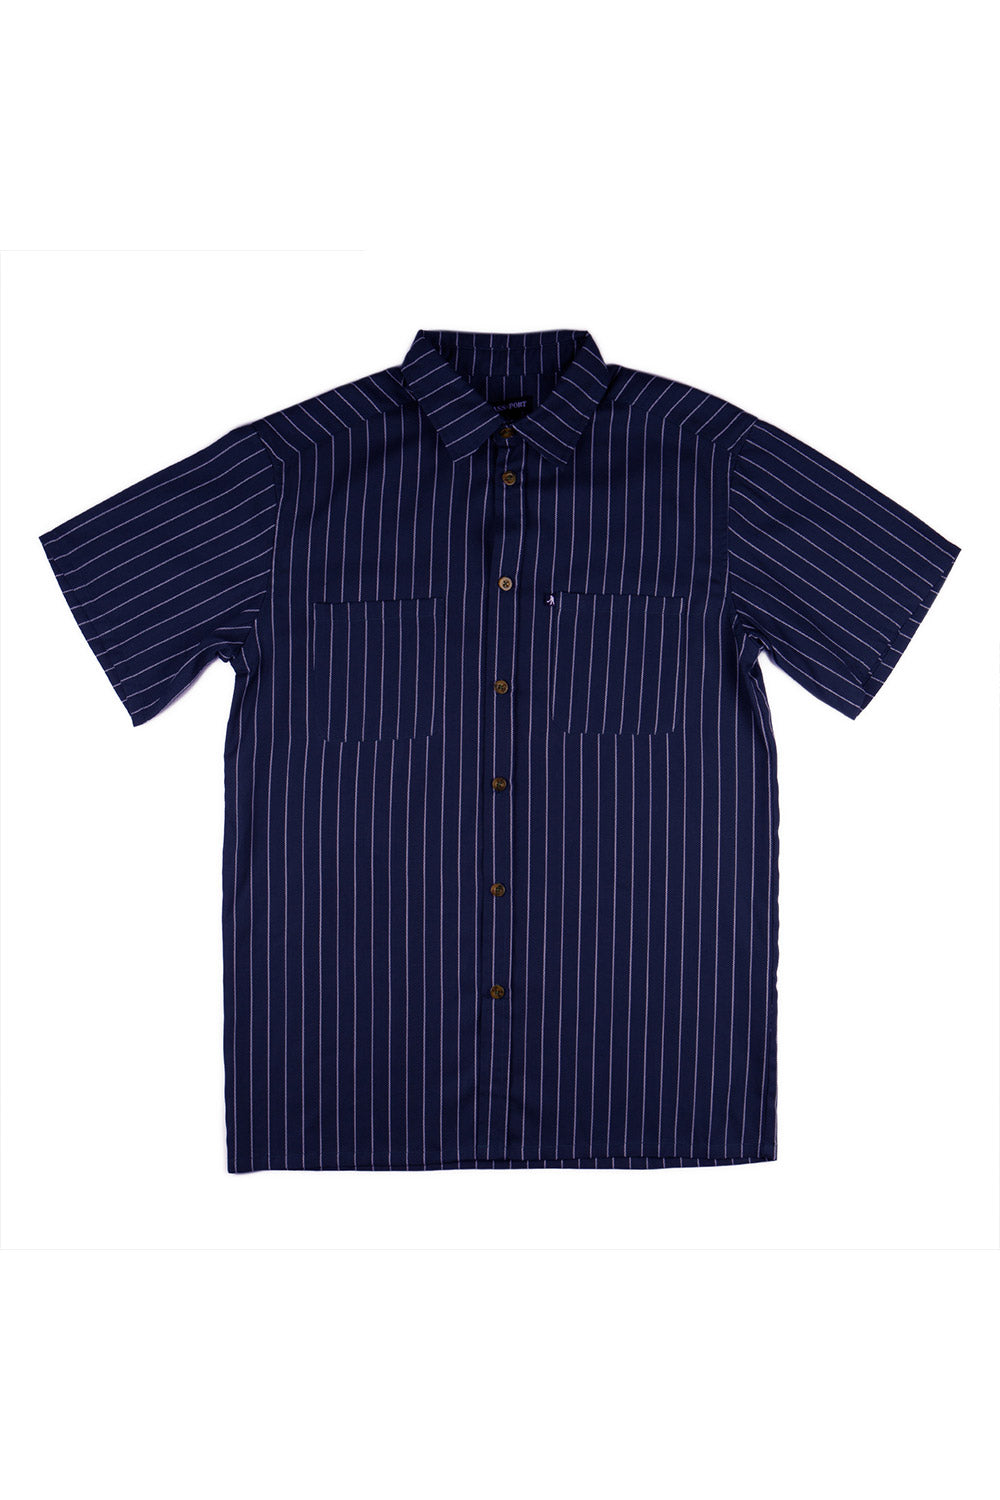 Passport Worker S/S Shirt